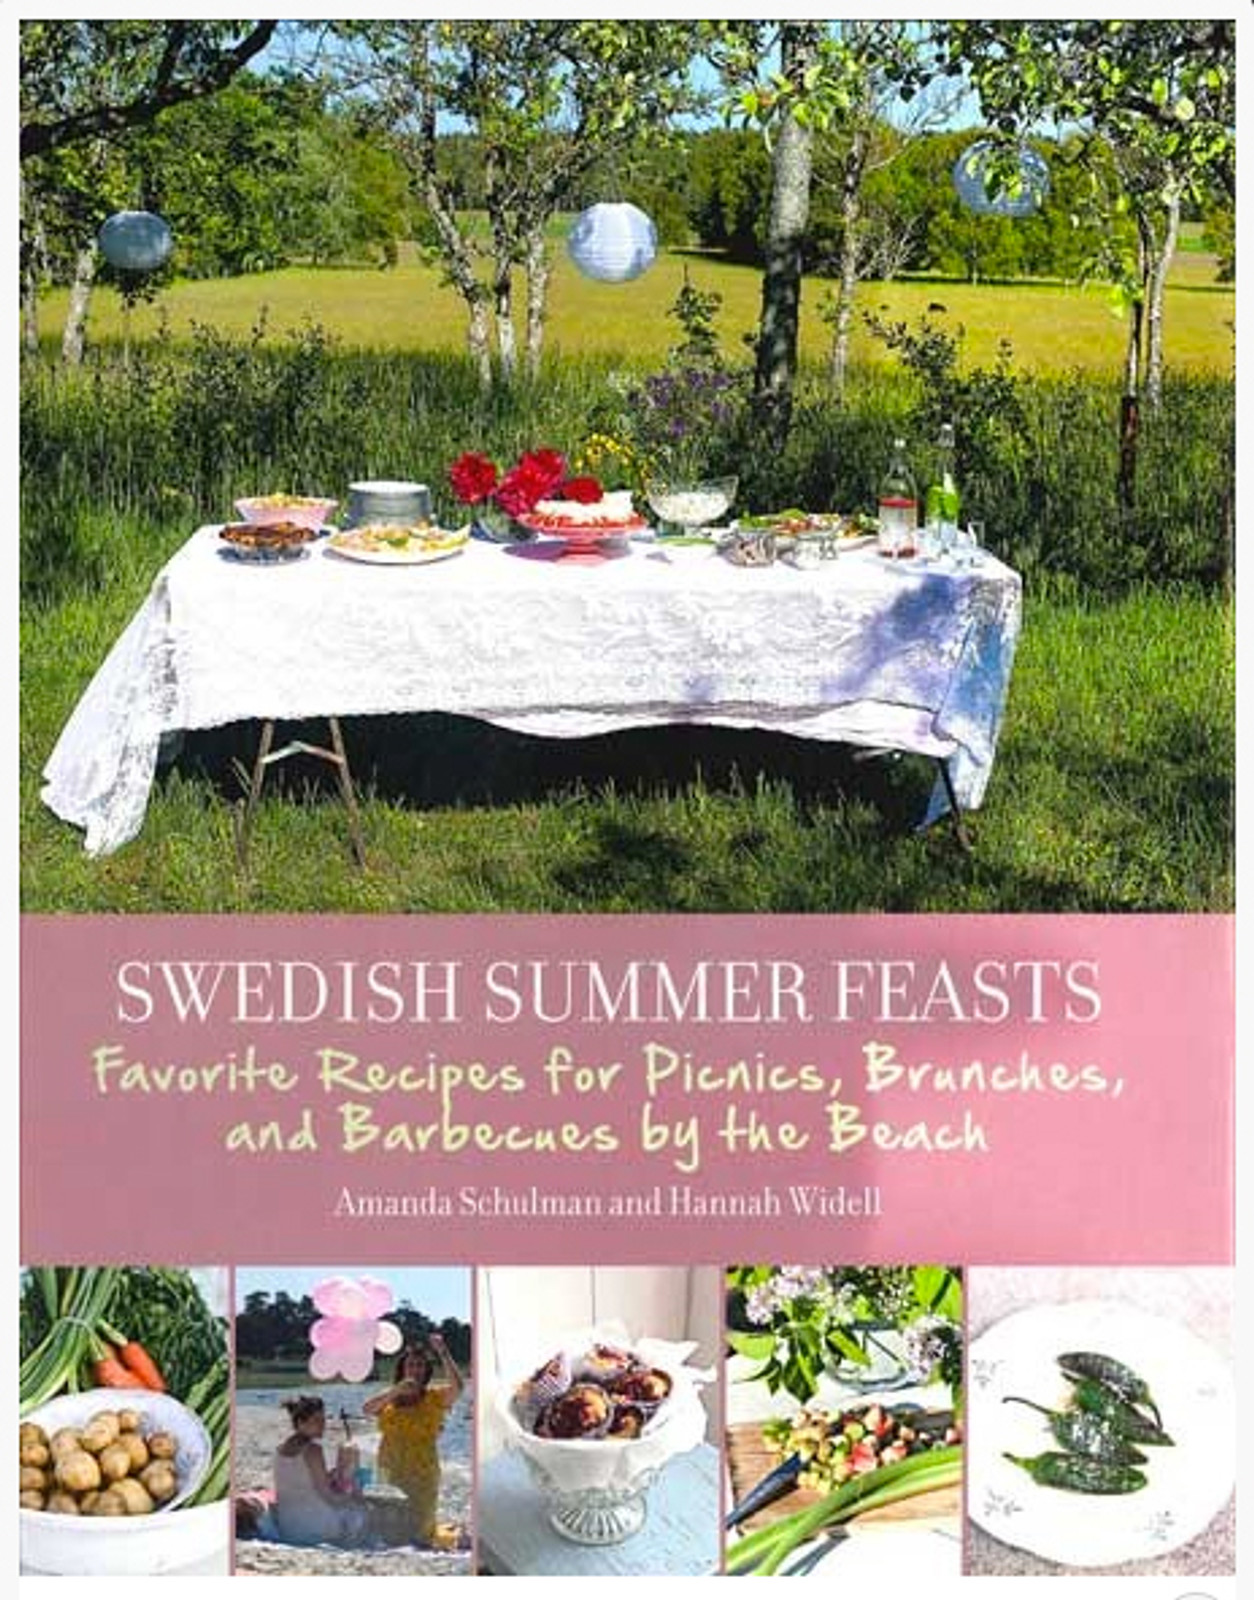 Swedish Summer Feasts  by Amanda Schulman and Hannah Widell